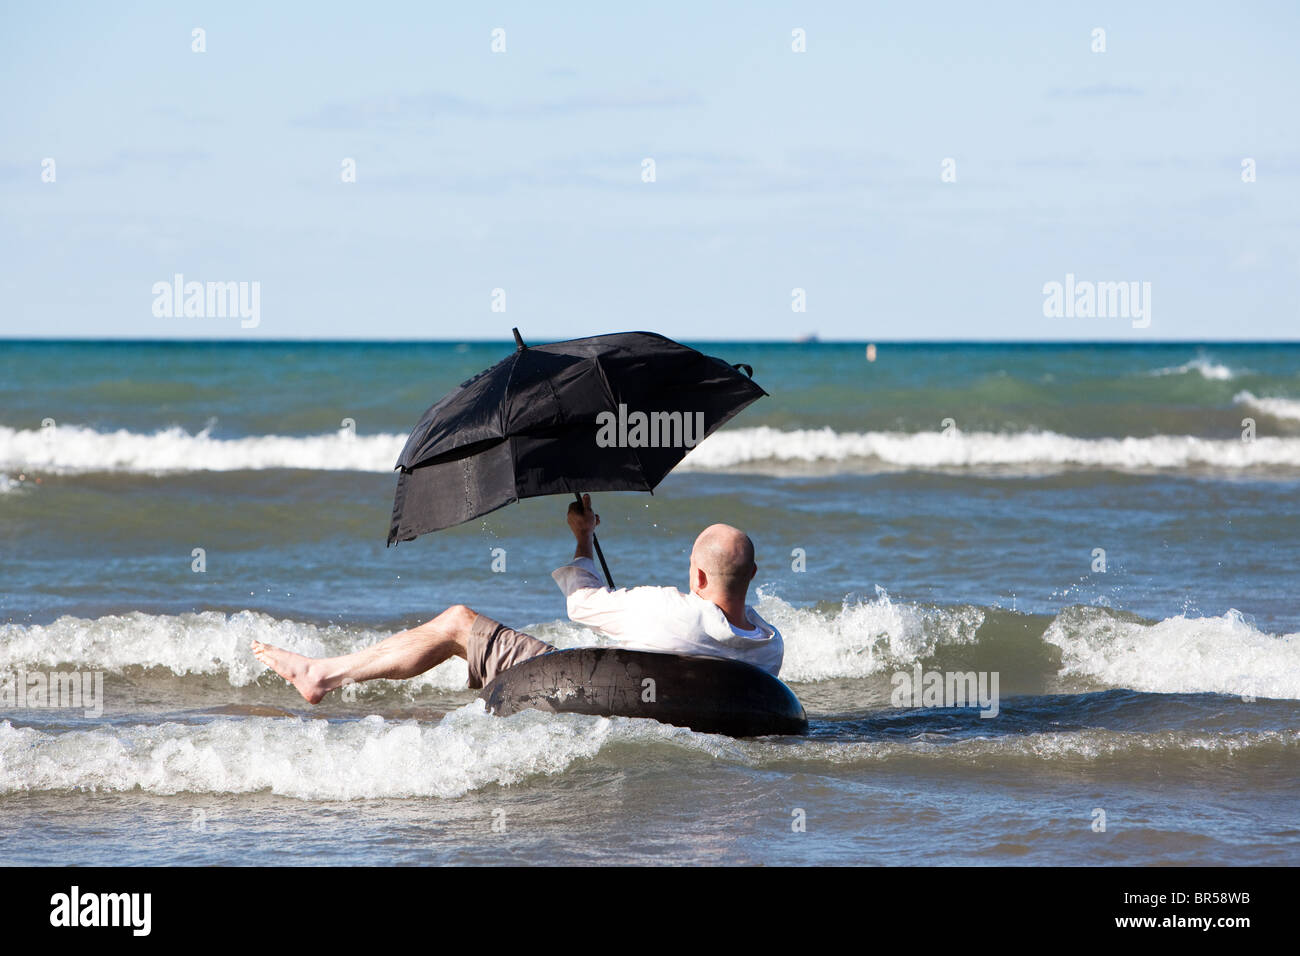 A Man travels with umbrella - Stock Image